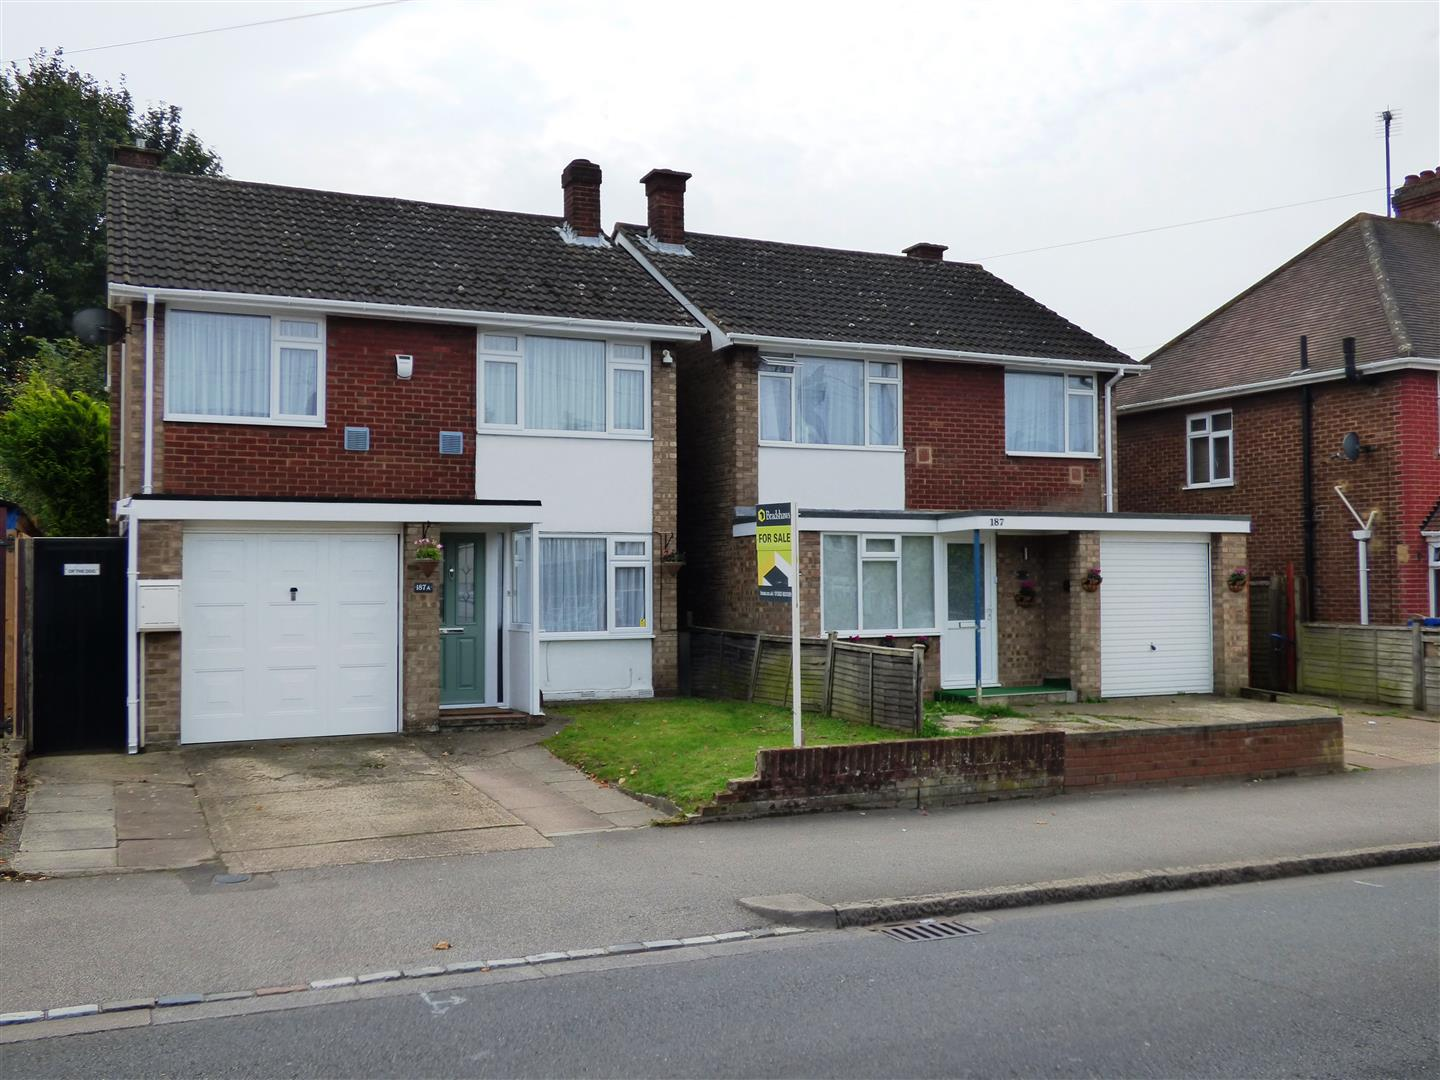 3 Bedrooms Detached House for sale in Luton Road, Dunstable